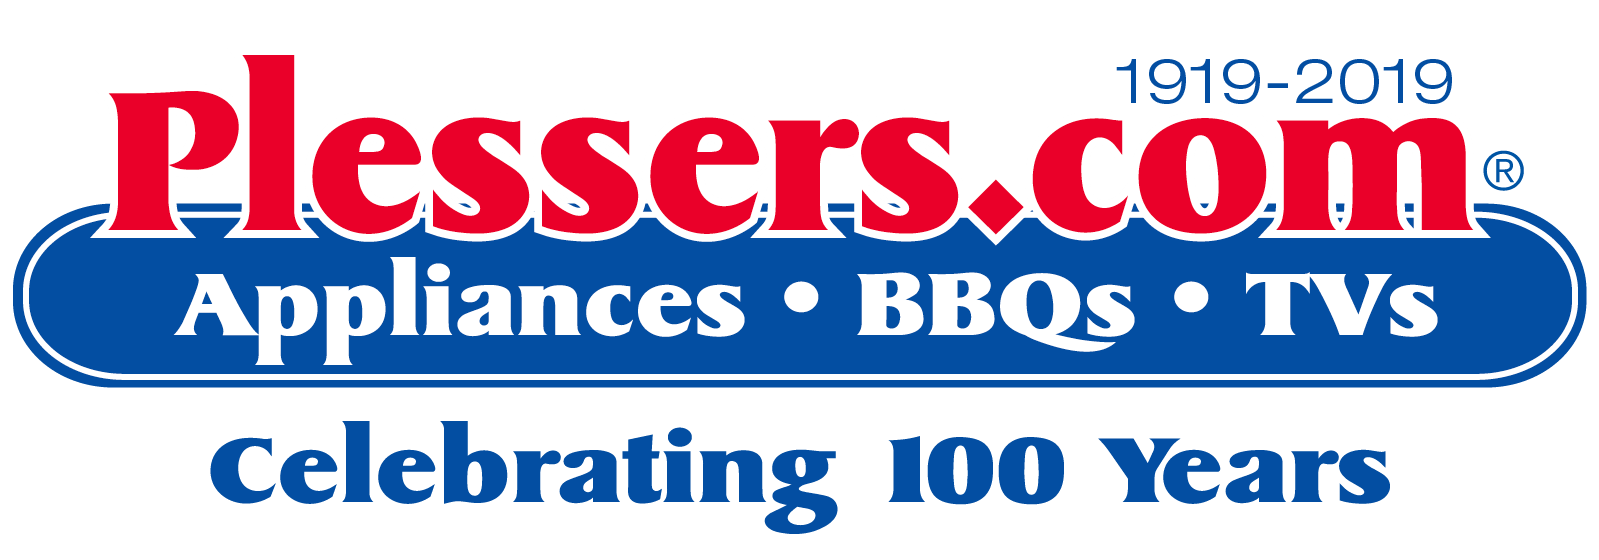 Plesser's Appliance Blog